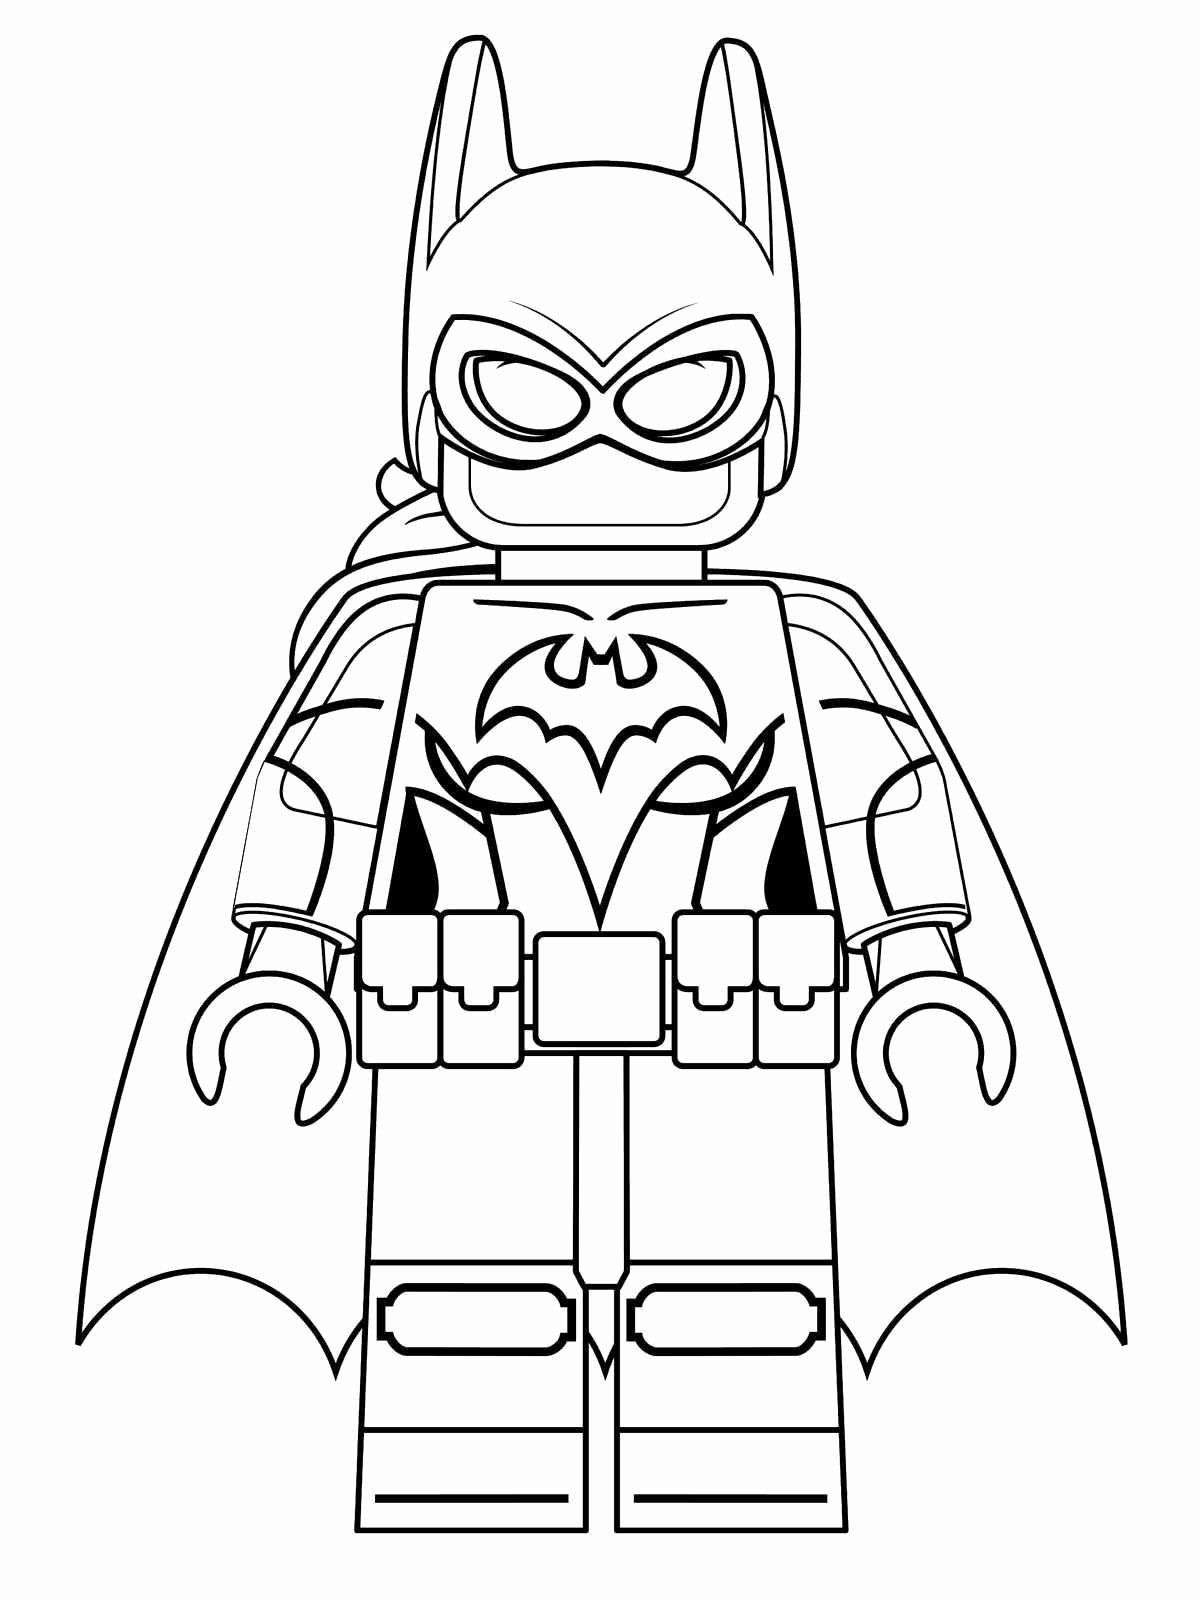 Captain America Coloring Pages New Ausmalbilder Captain America Fresh Captain America Coloring Superhero Coloring Lego Coloring Pages Lego Coloring